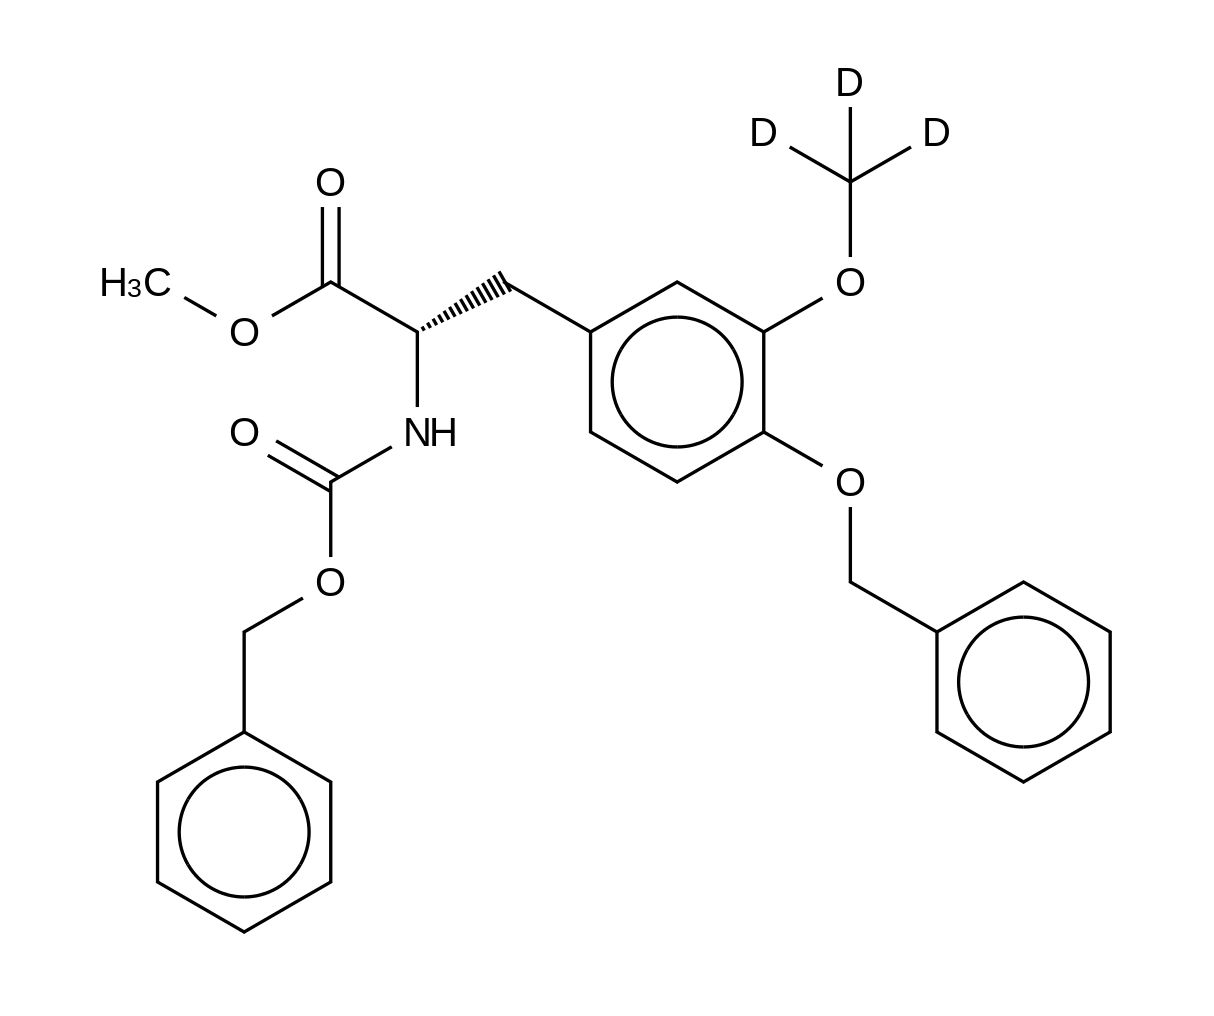 4-O-Benzyl-N-[(benzyloxy)carbonyl]-3-O-methyl-L-DOPA-d<sub>3</sub> Methyl Ester